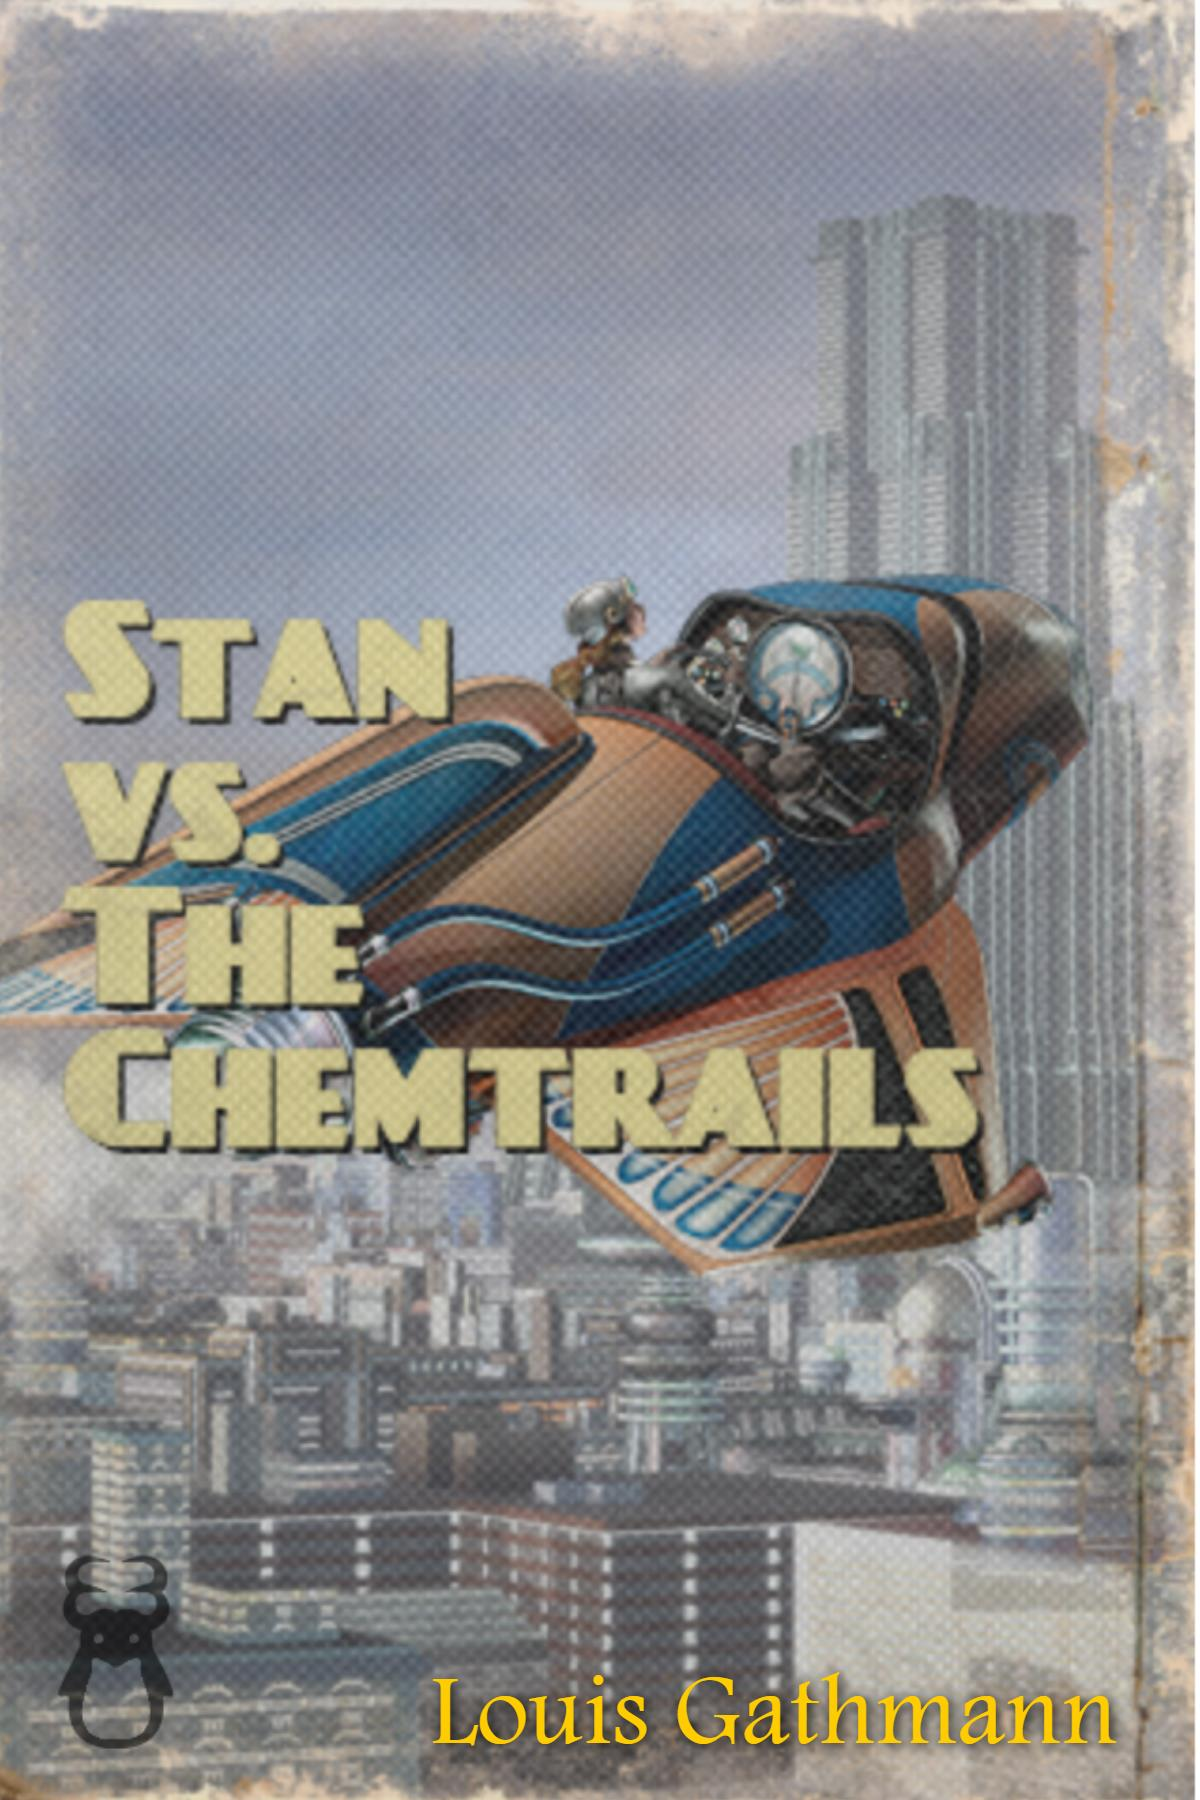 Stan Vs. The Chemtrails: Stan's Adventure Understanding the Skies By Louis Gathmann Audiobook